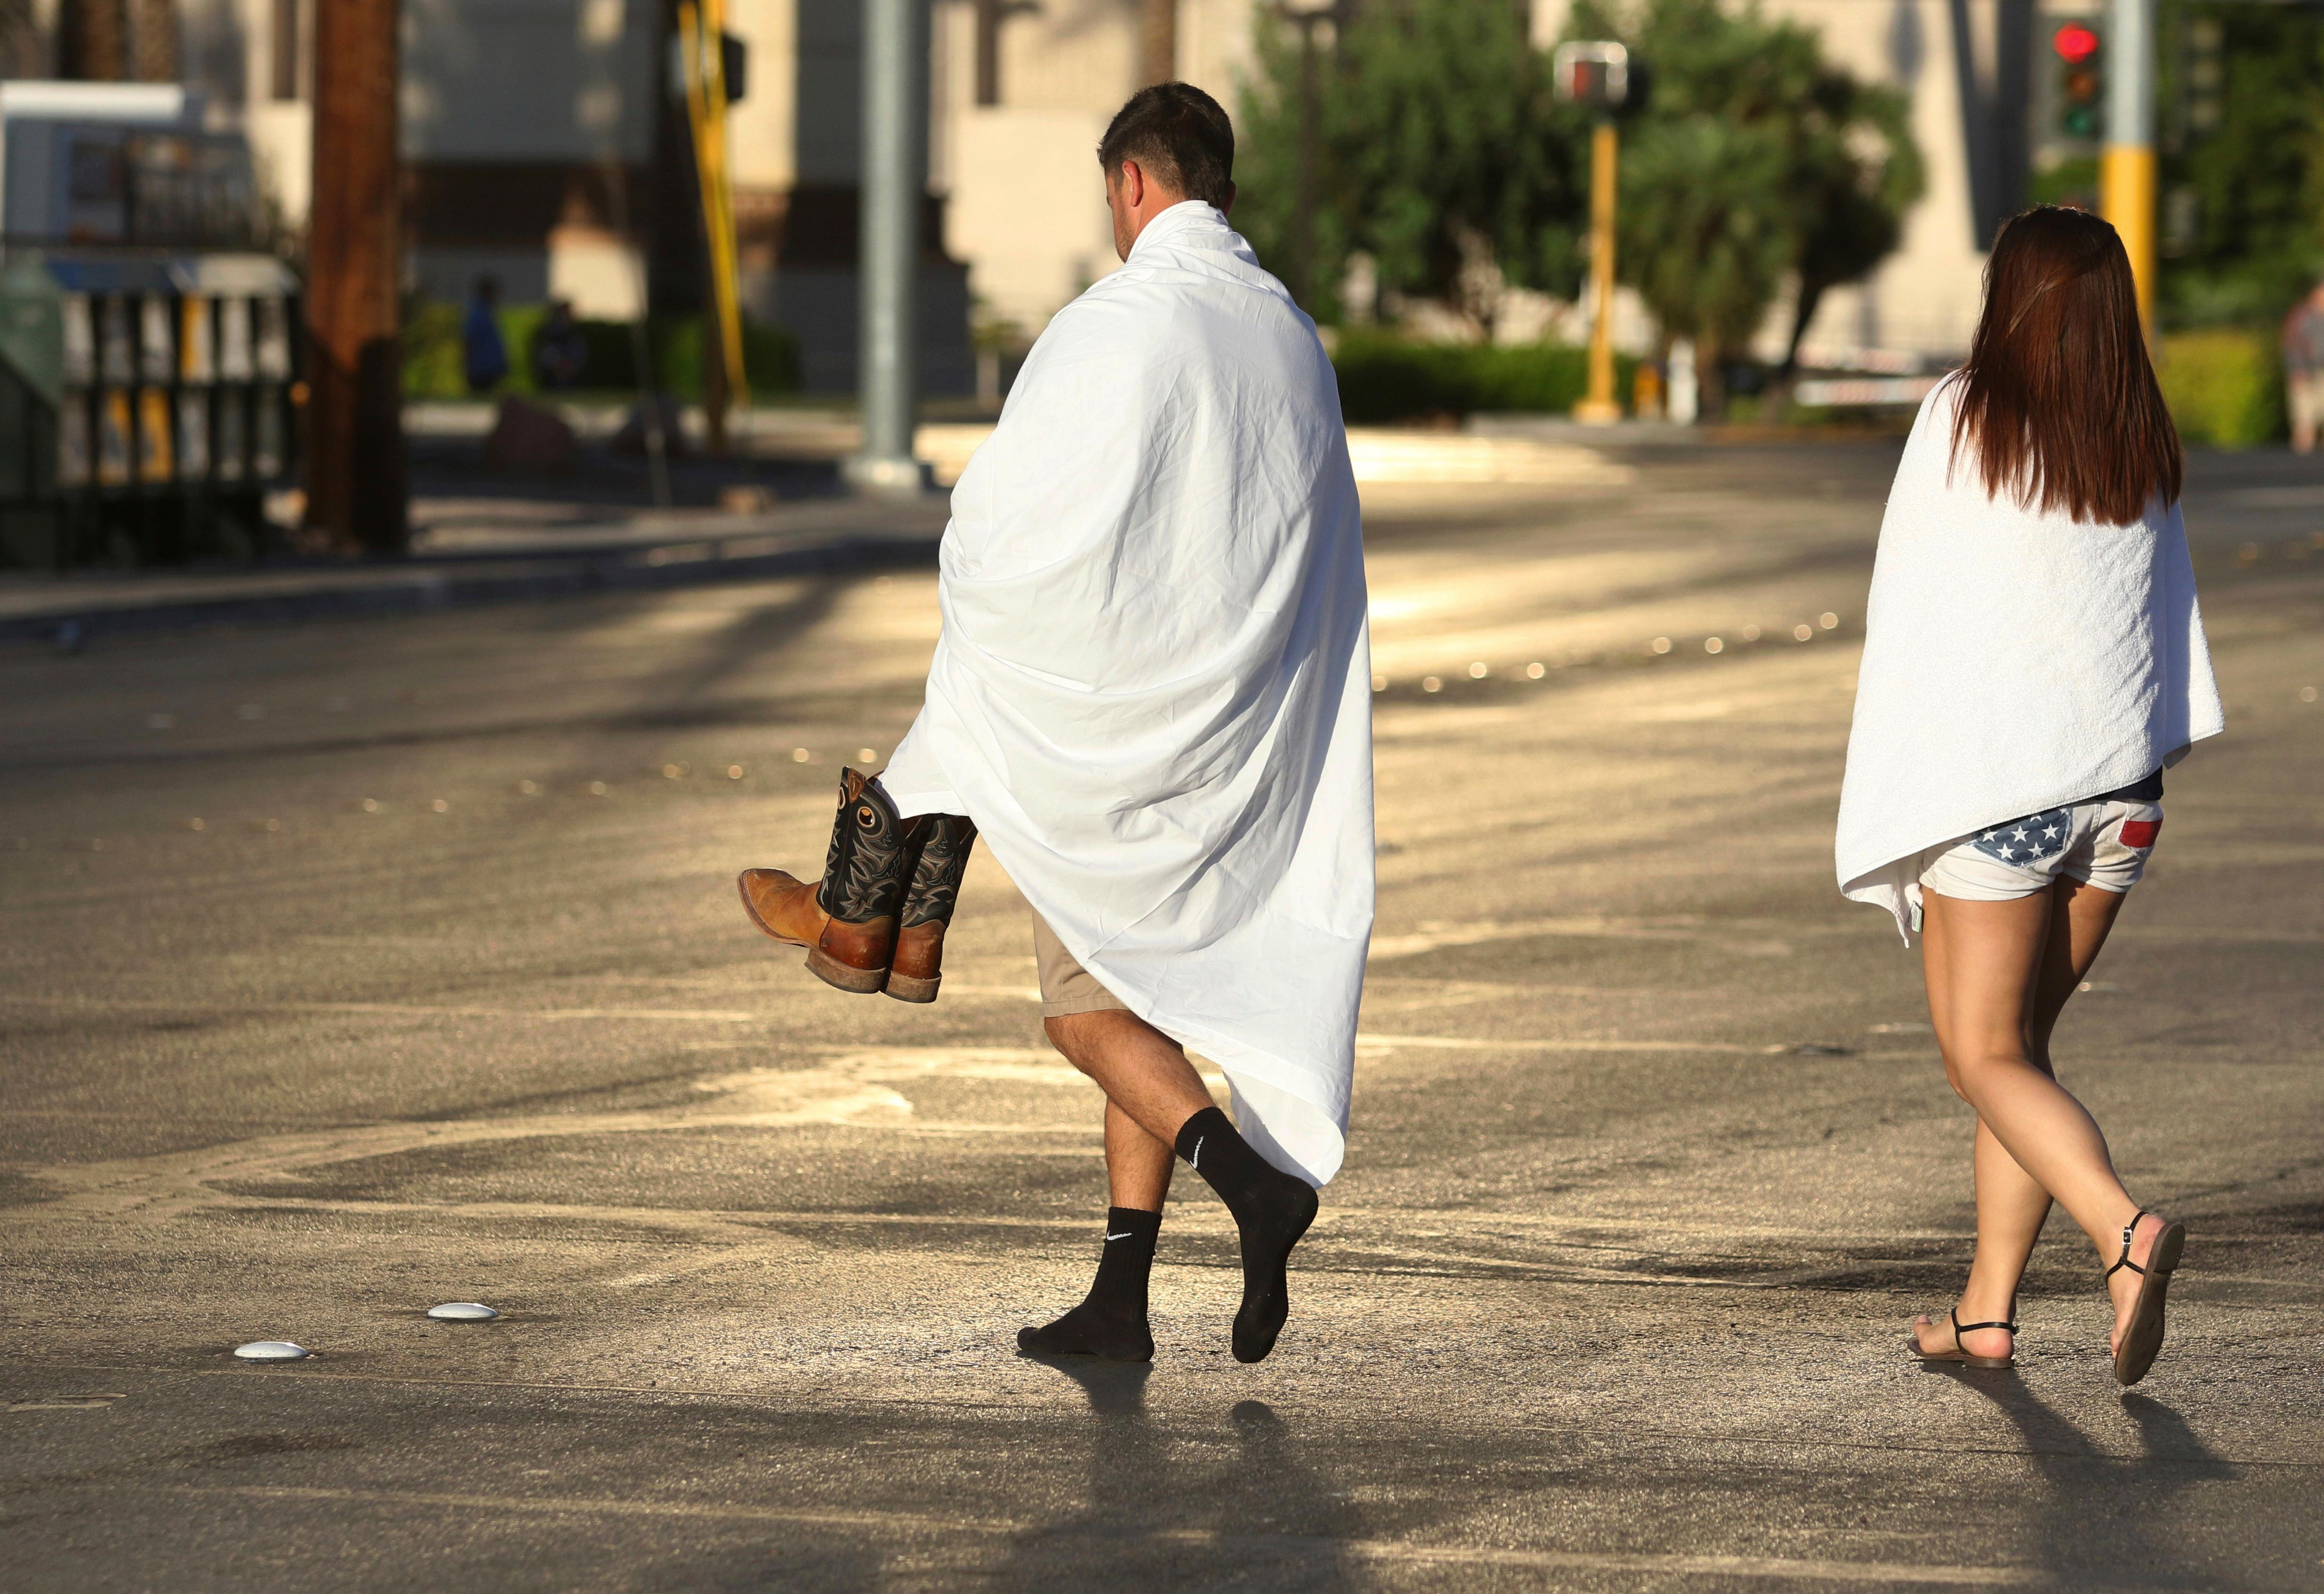 People walk near the Las Vegas Strip shortly after sunrise Monday, Oct. 2, 2017, in Las Vegas. A deadly shooting occurred Sunday at a music festival on the Las Vegas Strip. (AP Photo/Ronda Churchill)